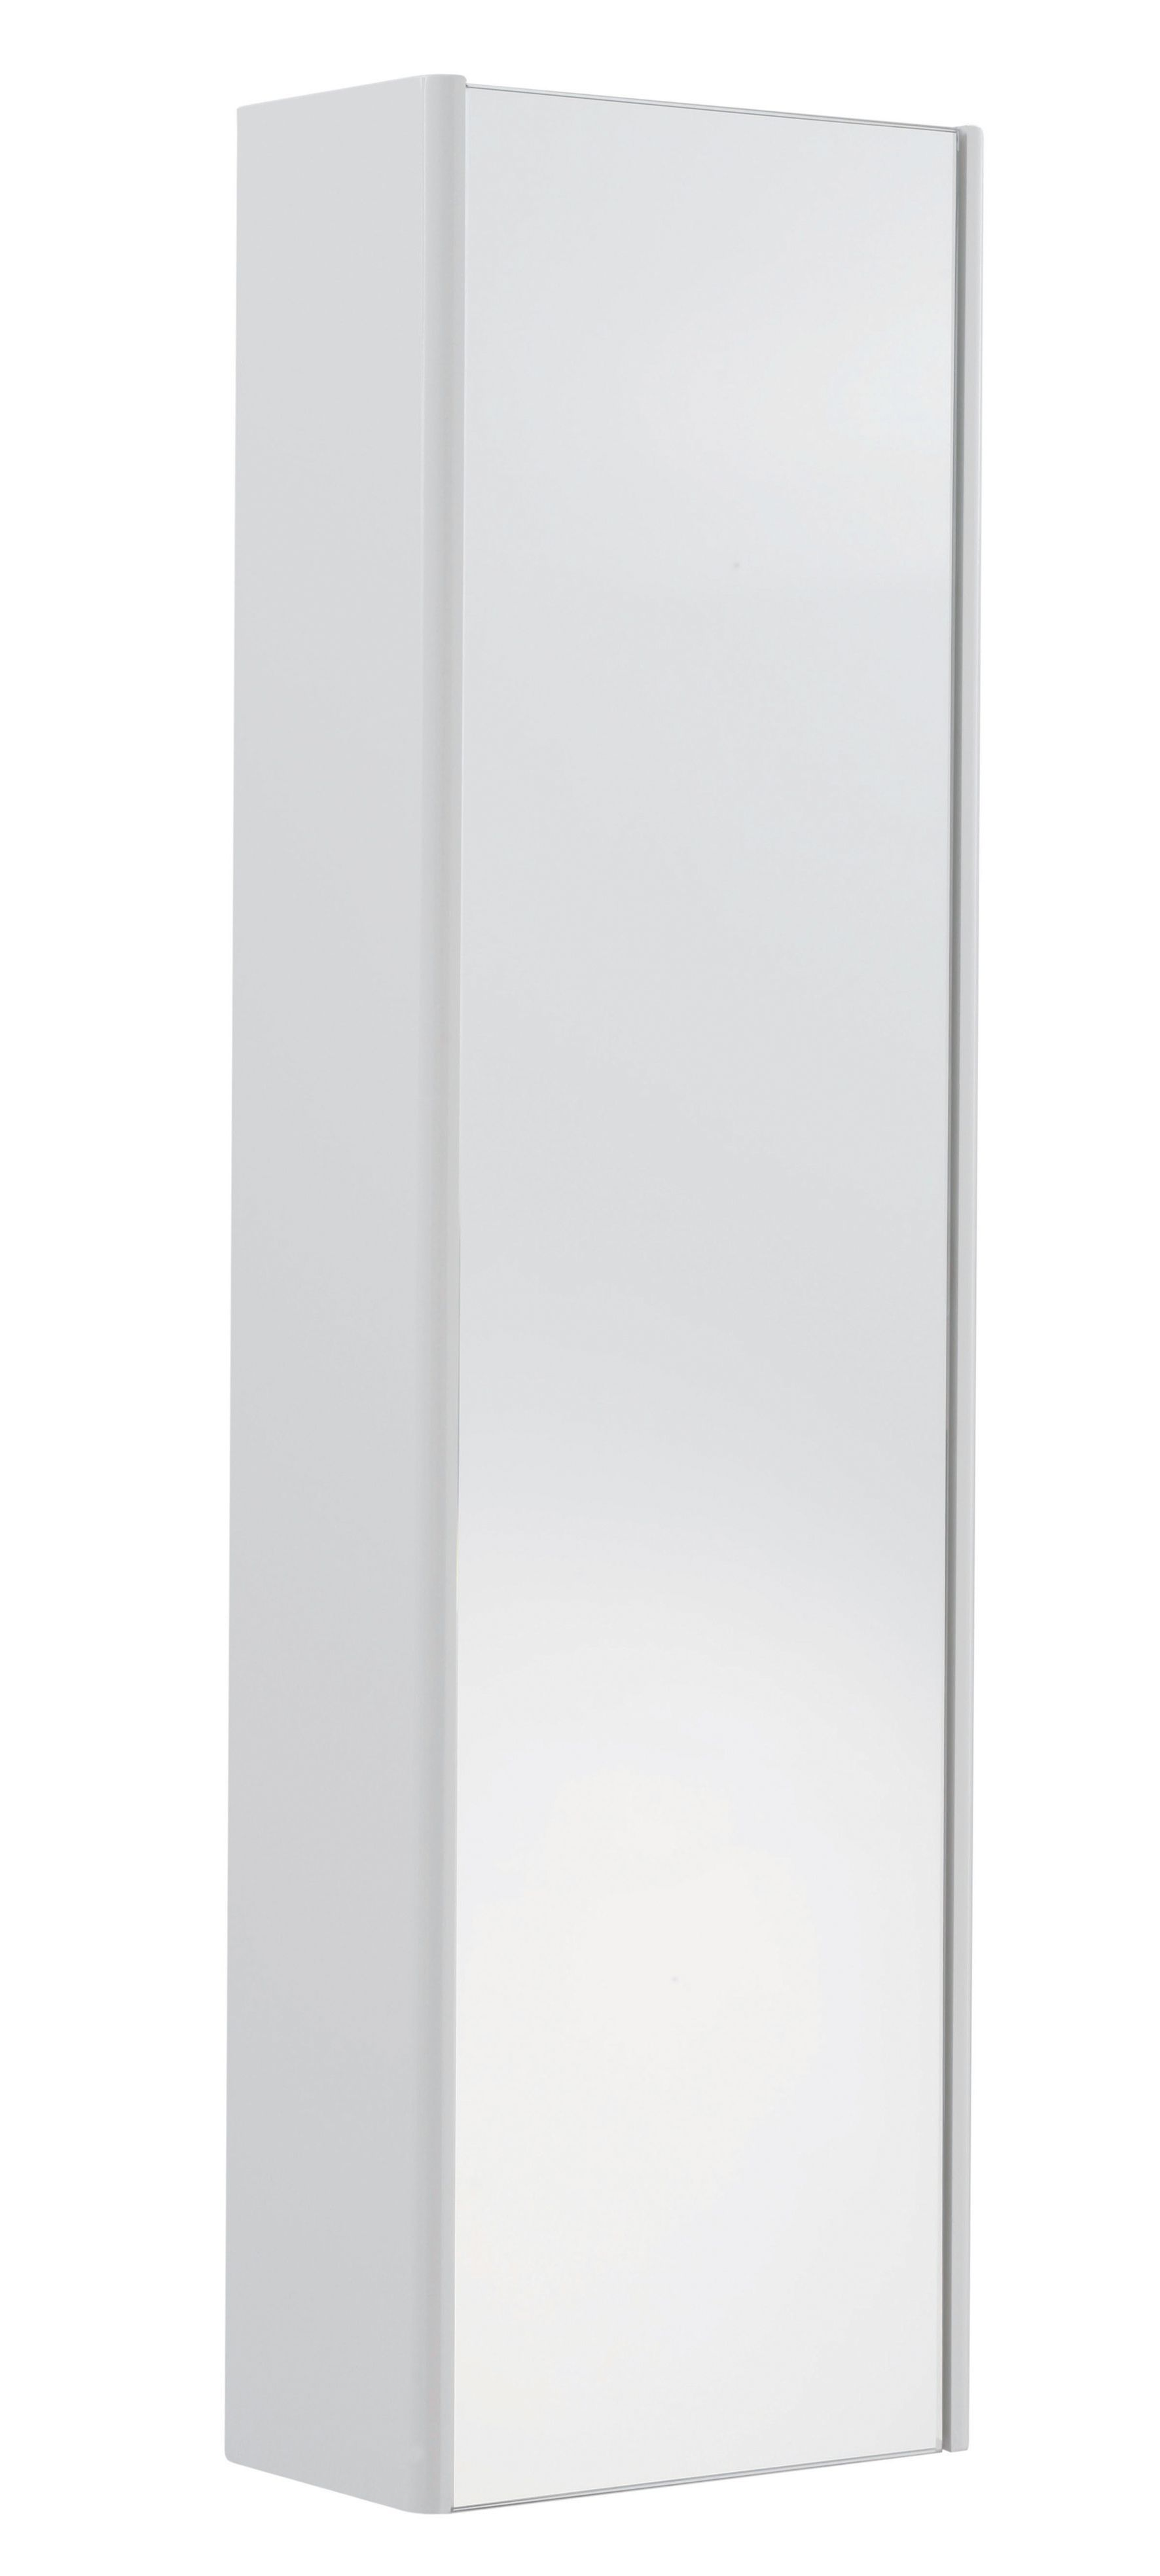 Cooke & Lewis Tobique Single Door White Tall Mirror Cabinet